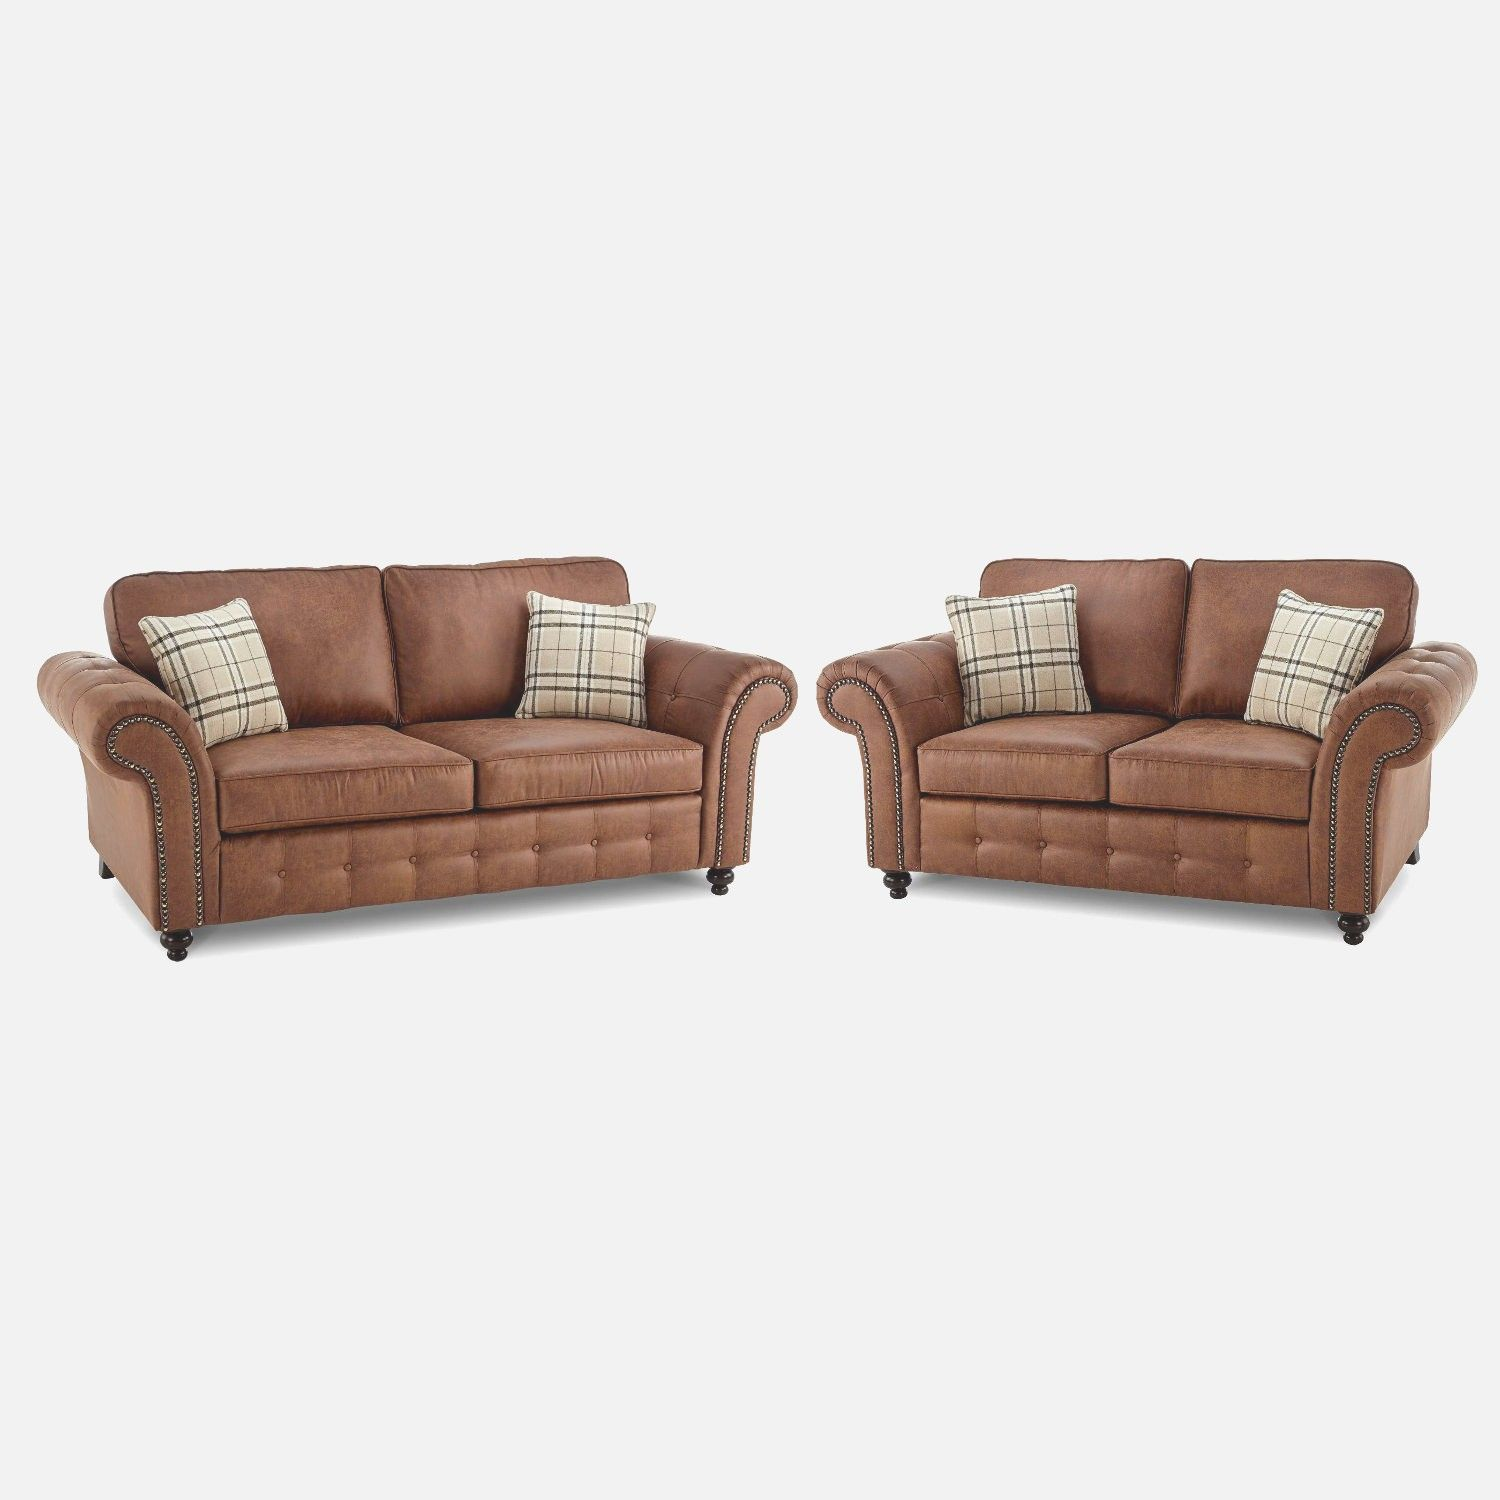 Stupendous Leather Sofa And Loveseat Combo Leather Reclining Sofa And Uwap Interior Chair Design Uwaporg